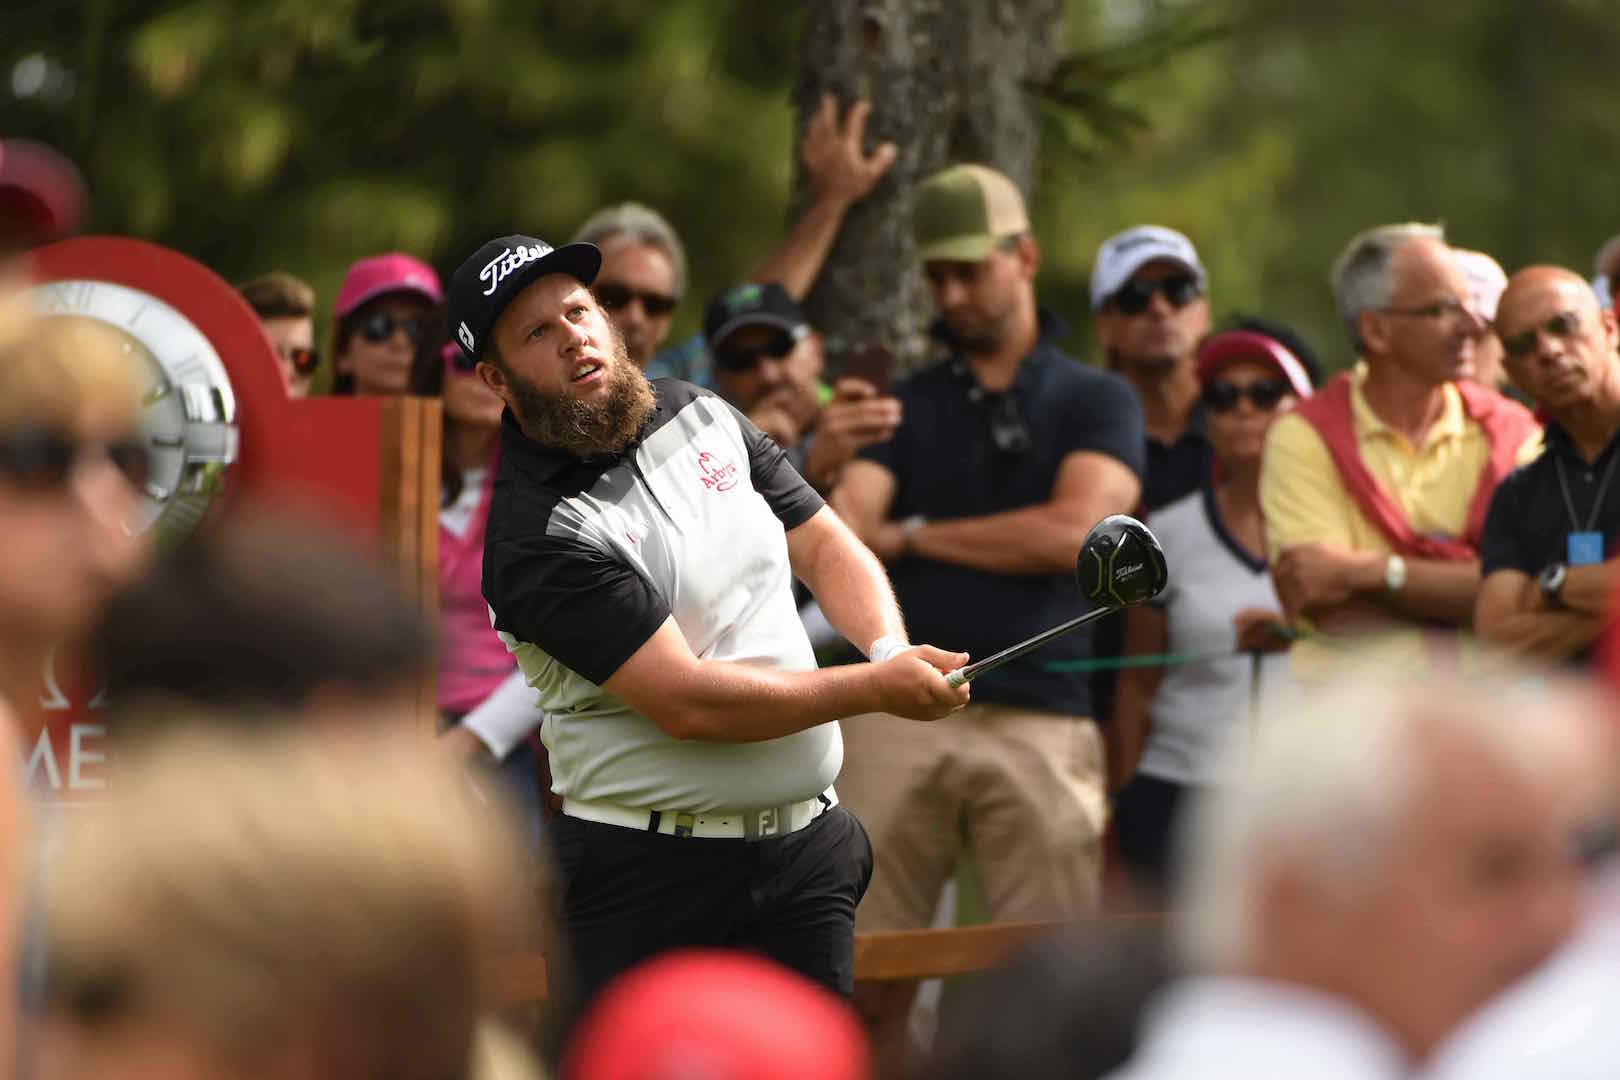 Beef to try and earn his PGA Tour Card